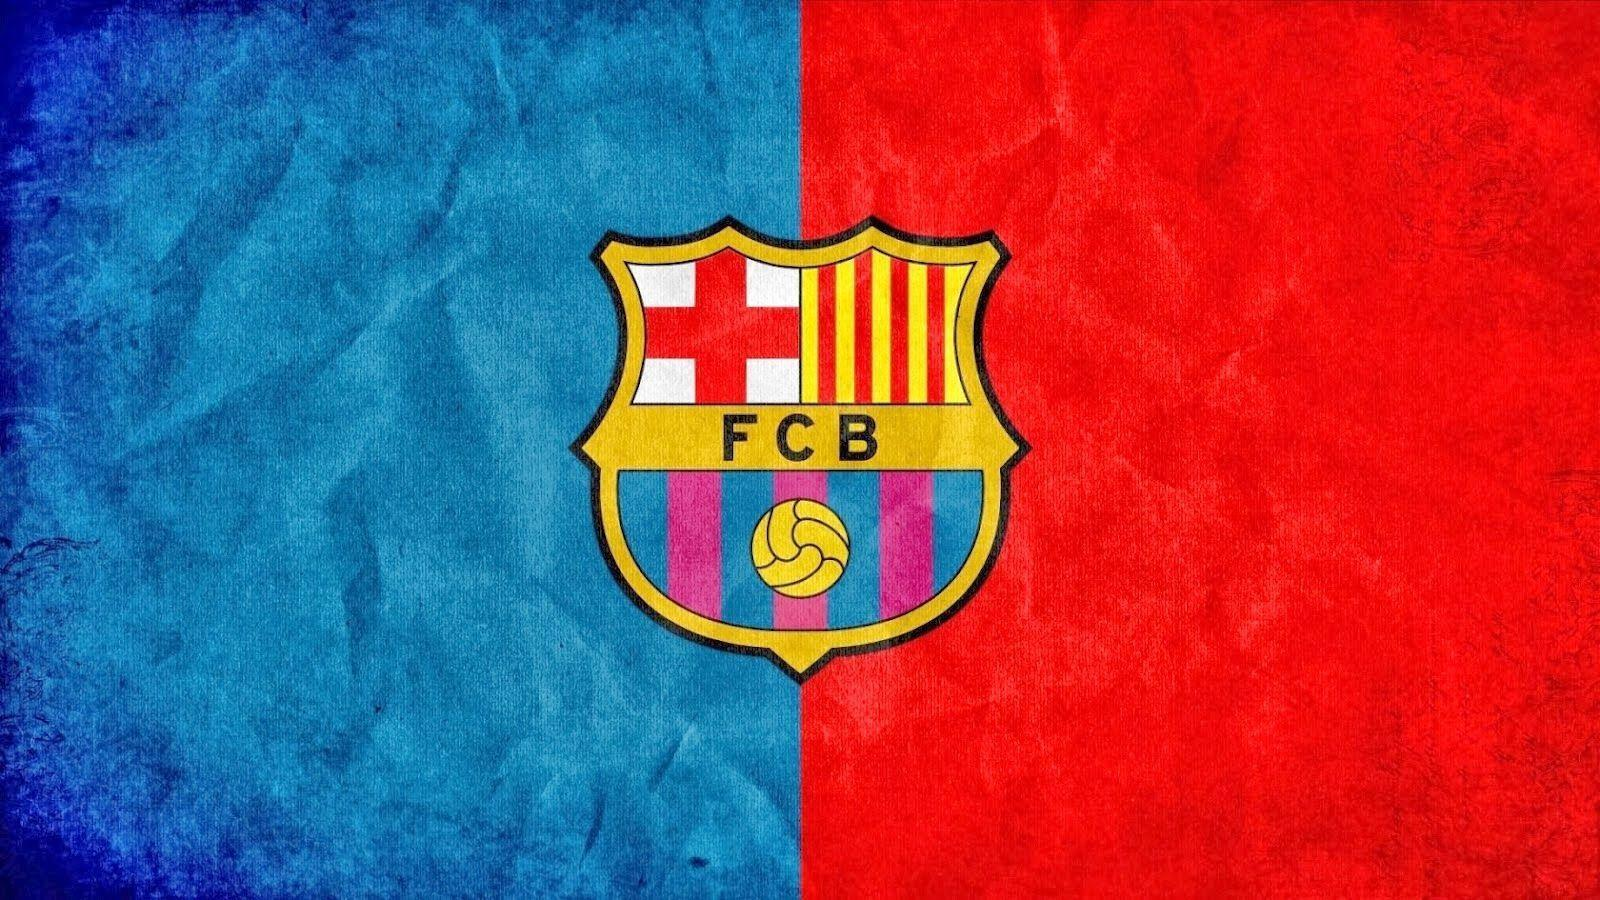 Wallpaper Fc Barcelona 2017 >> Fcb 2017 Mobile Wallpapers - Wallpaper Cave